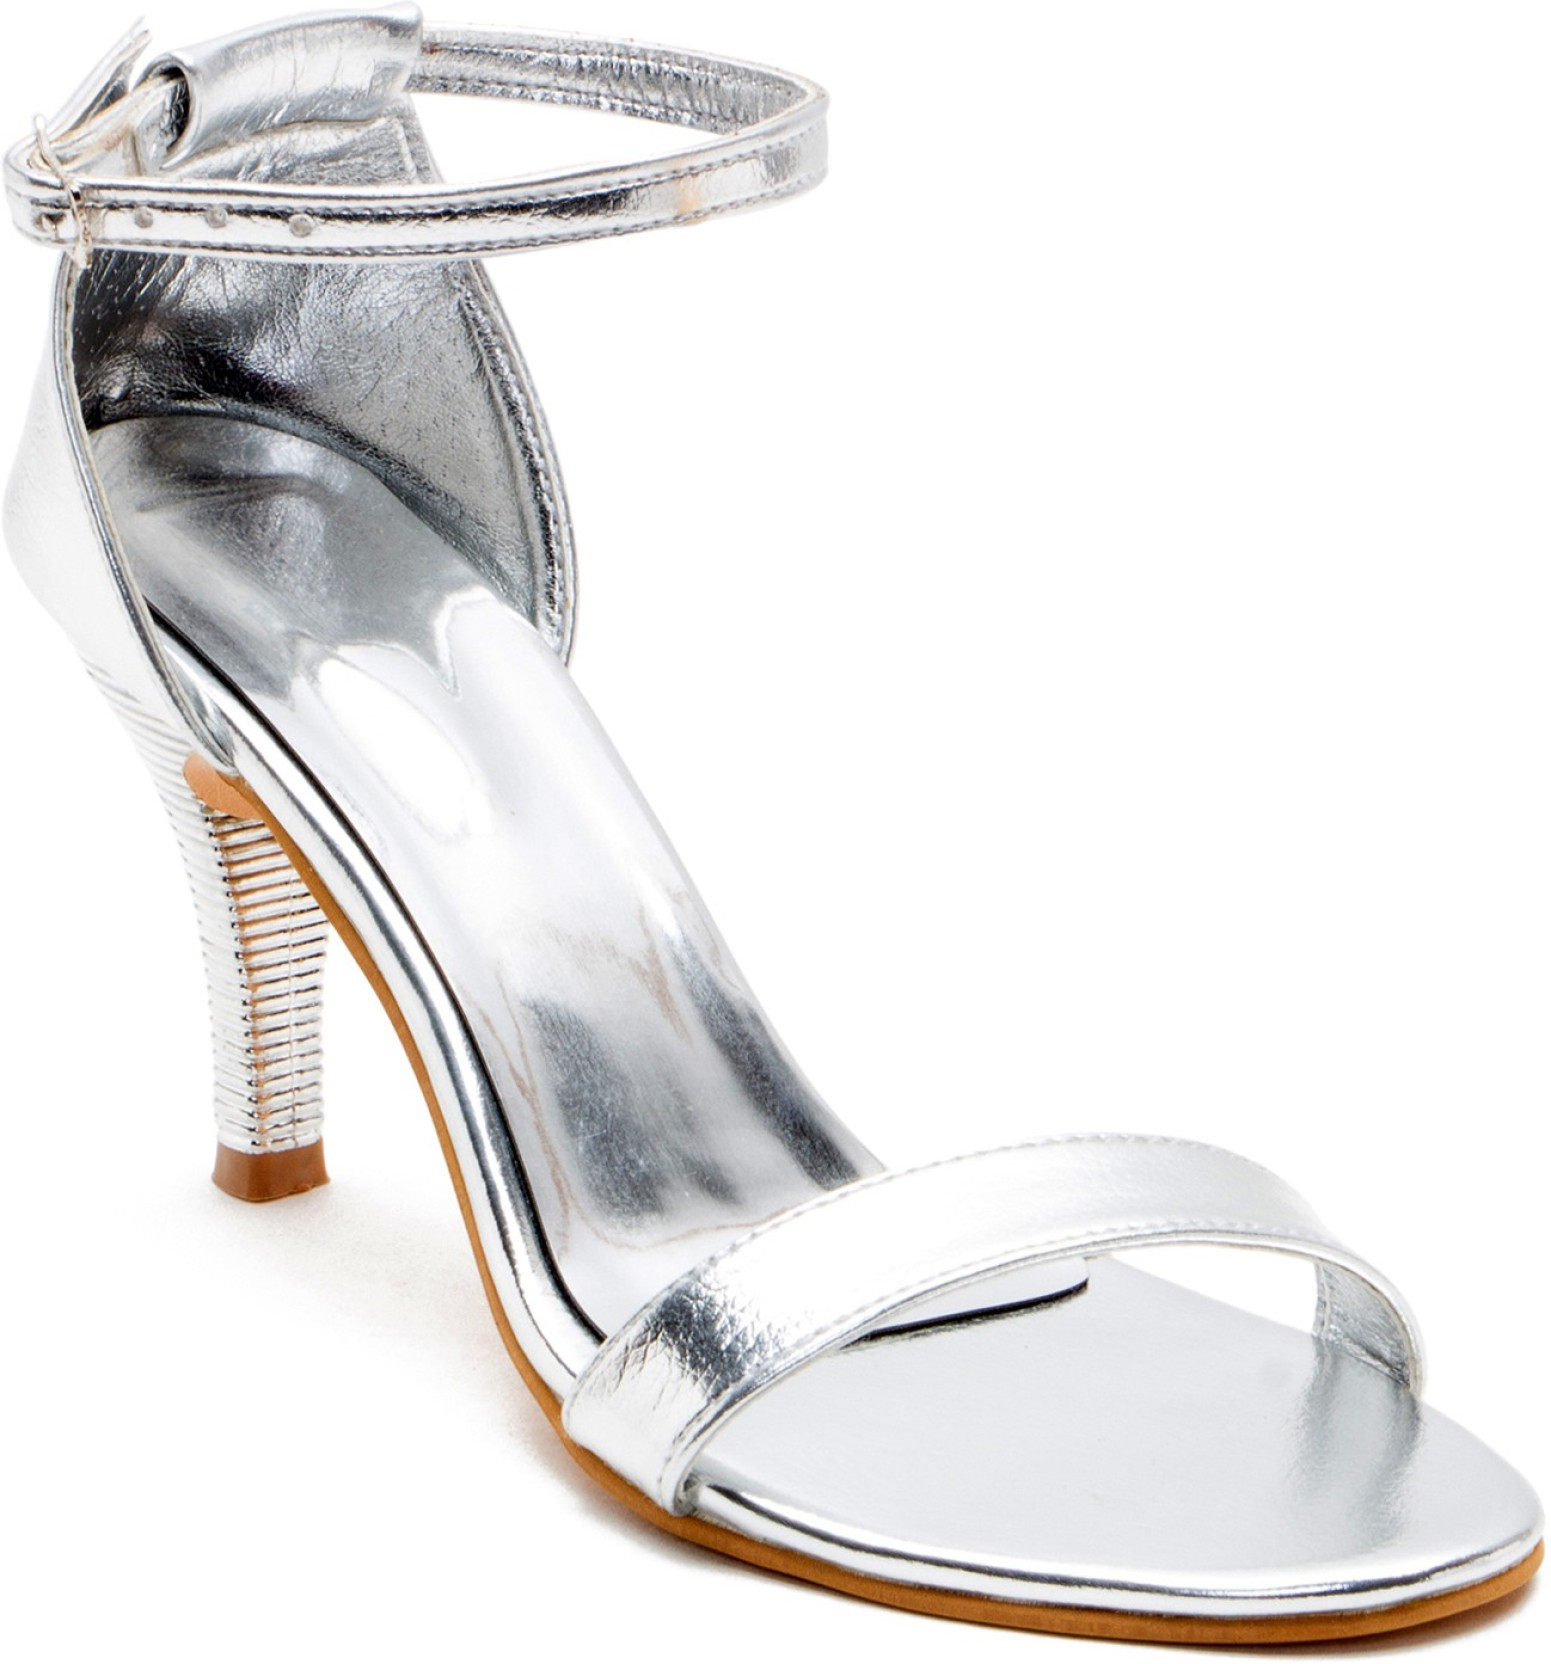 972866f7bb8 NaaZ Women Silver Heels - Buy Silver Color NaaZ Women Silver Heels ...